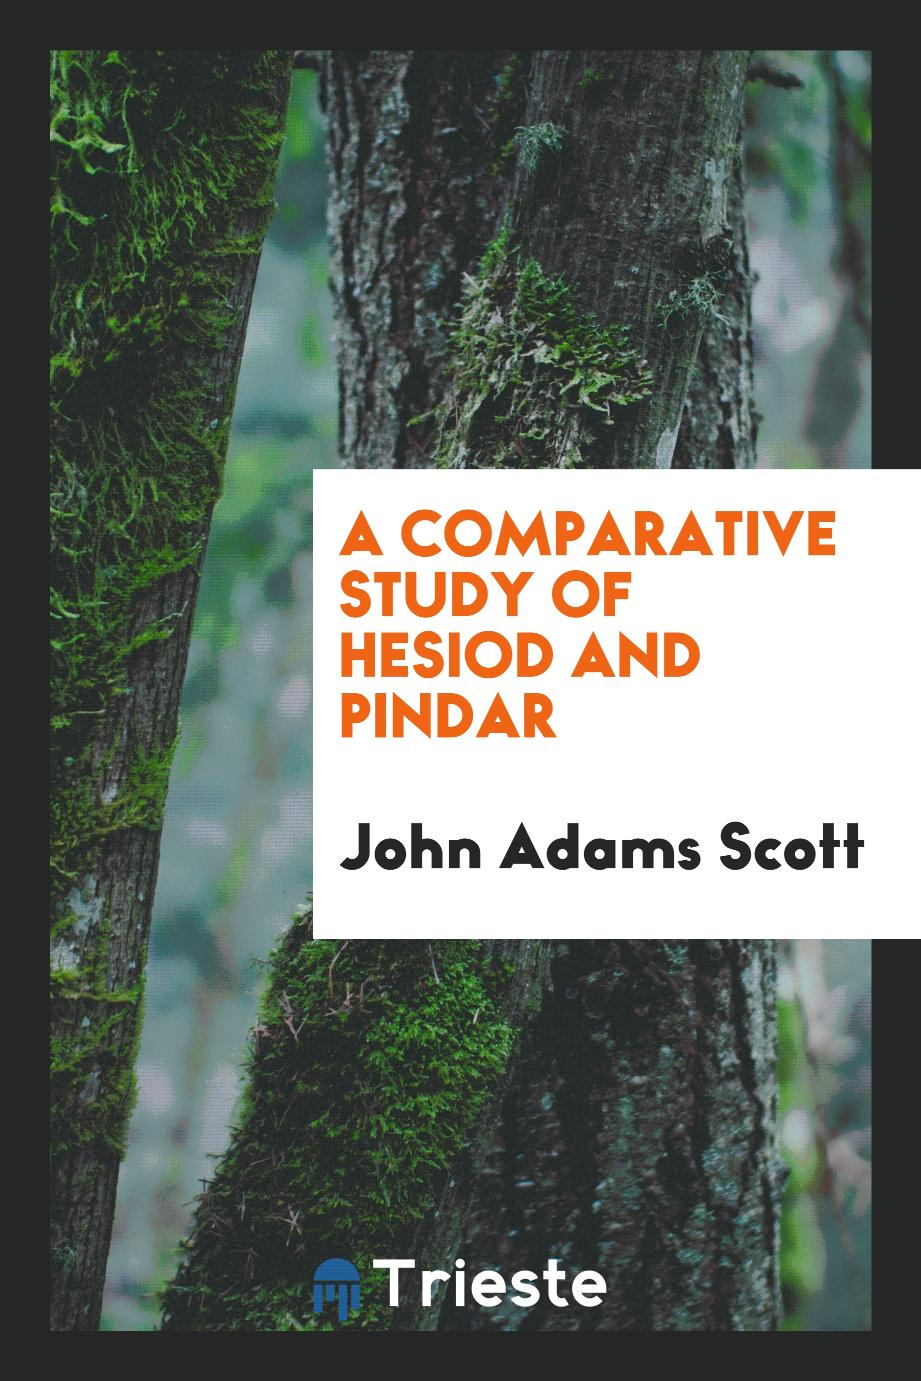 A Comparative Study of Hesiod and Pindar